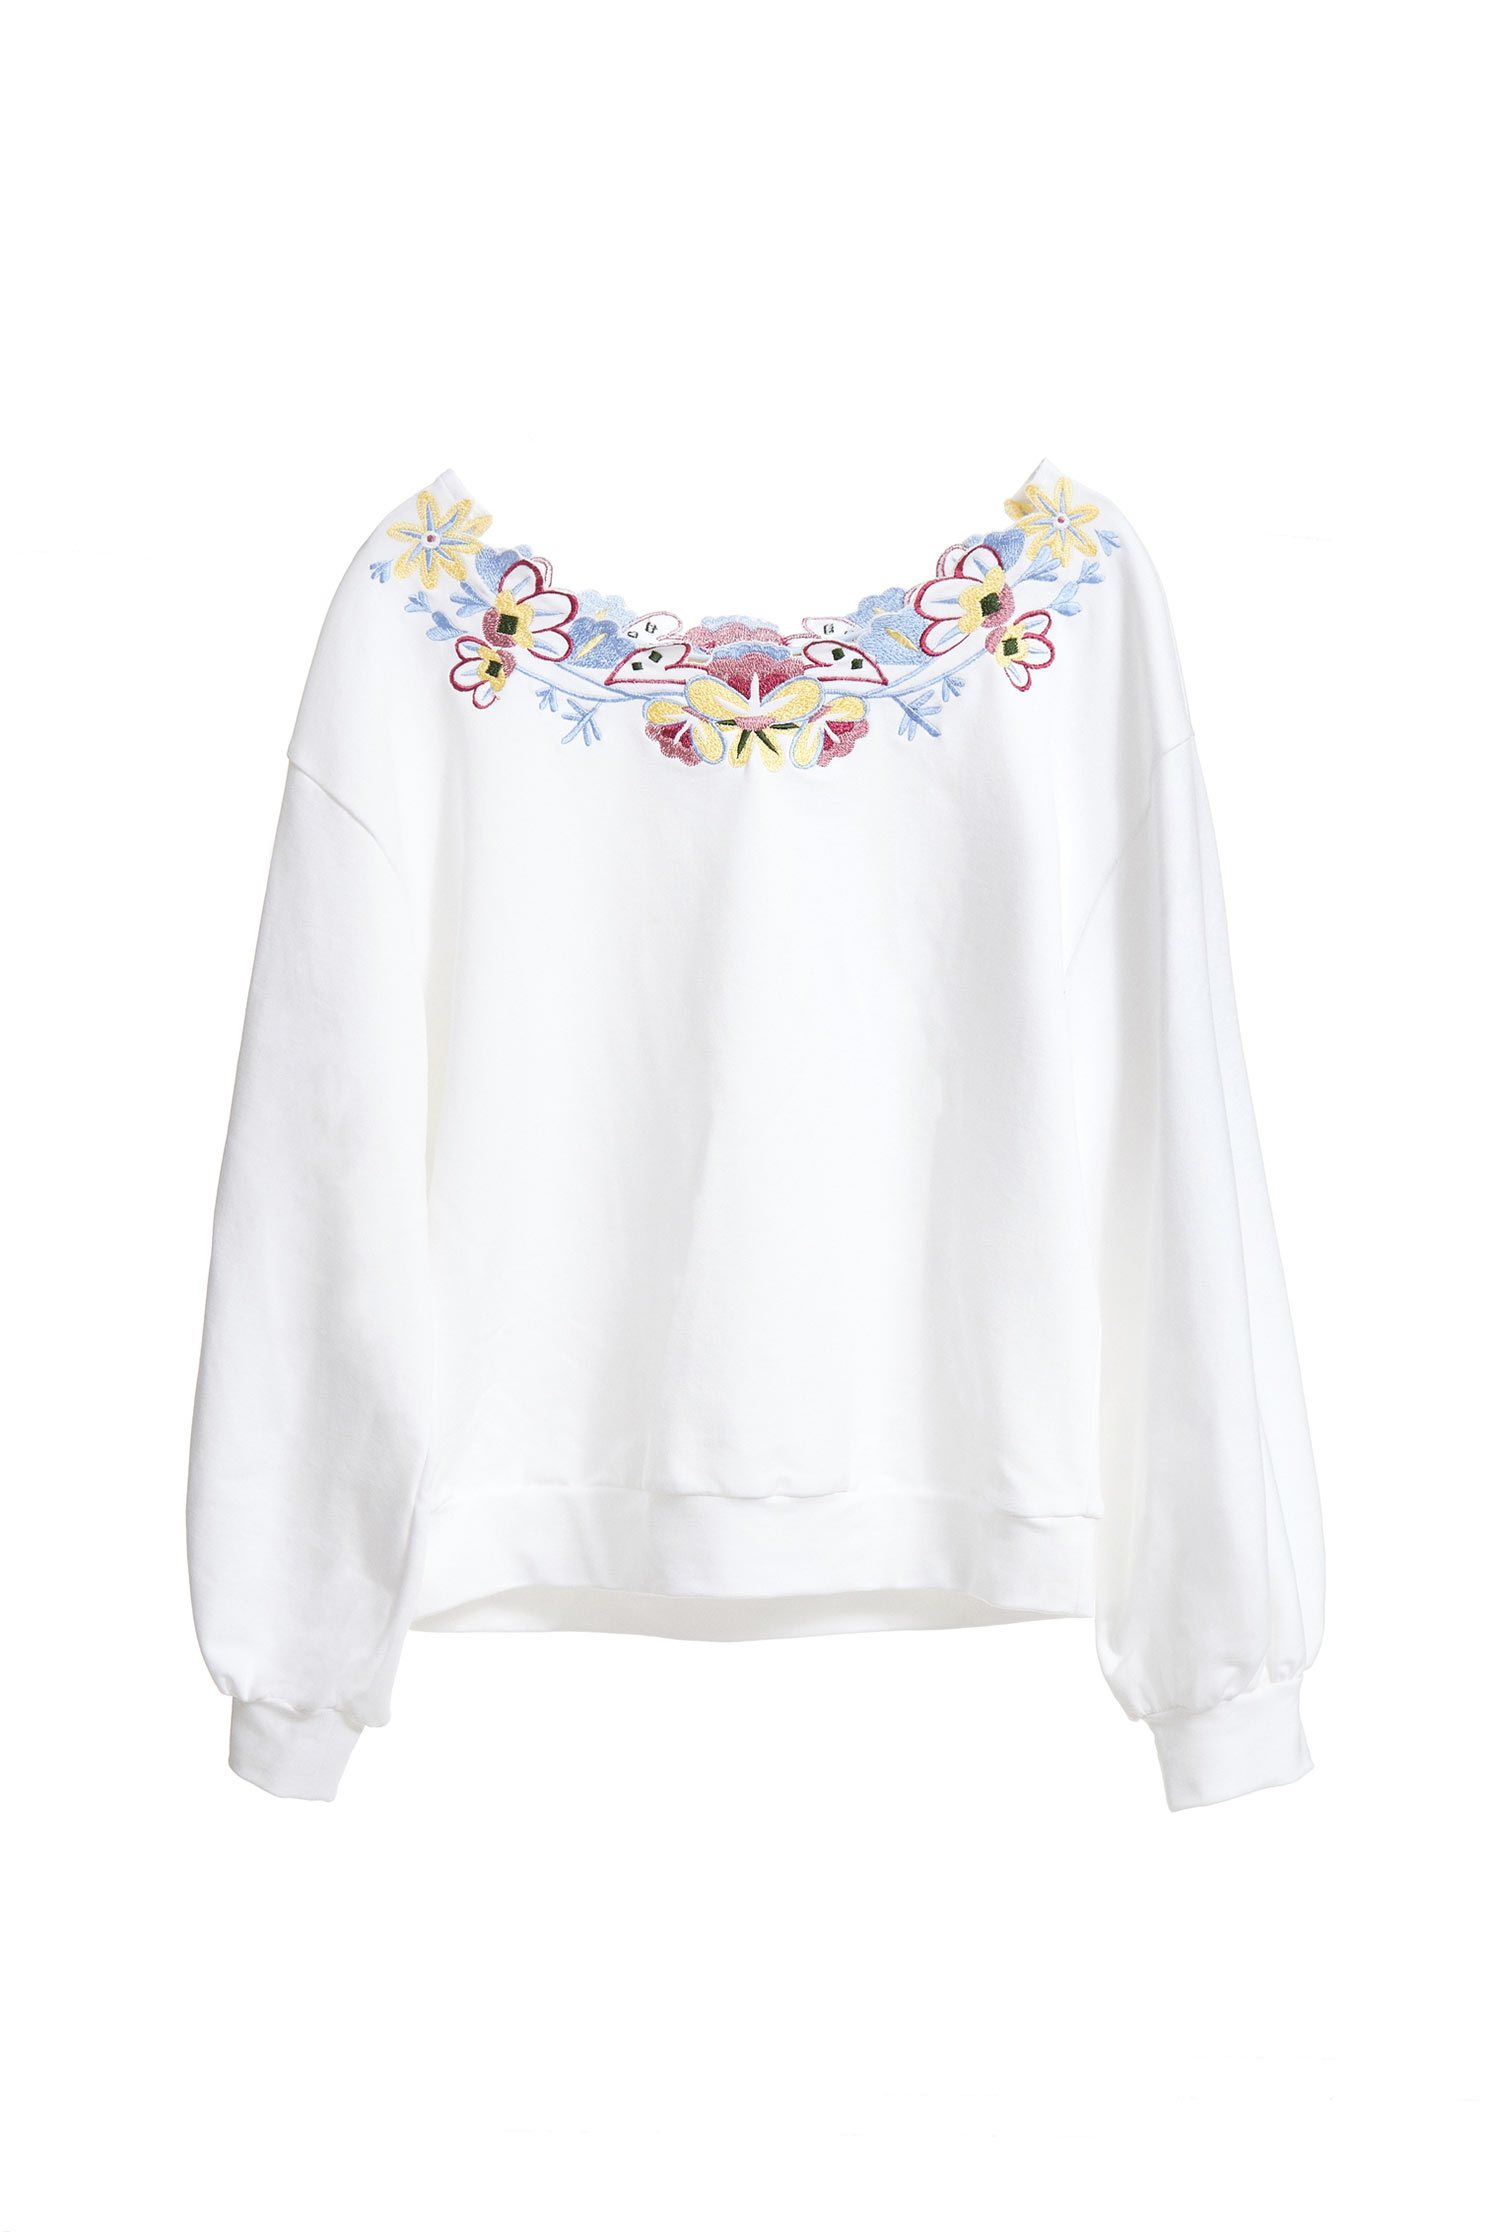 Temperament flower collar top